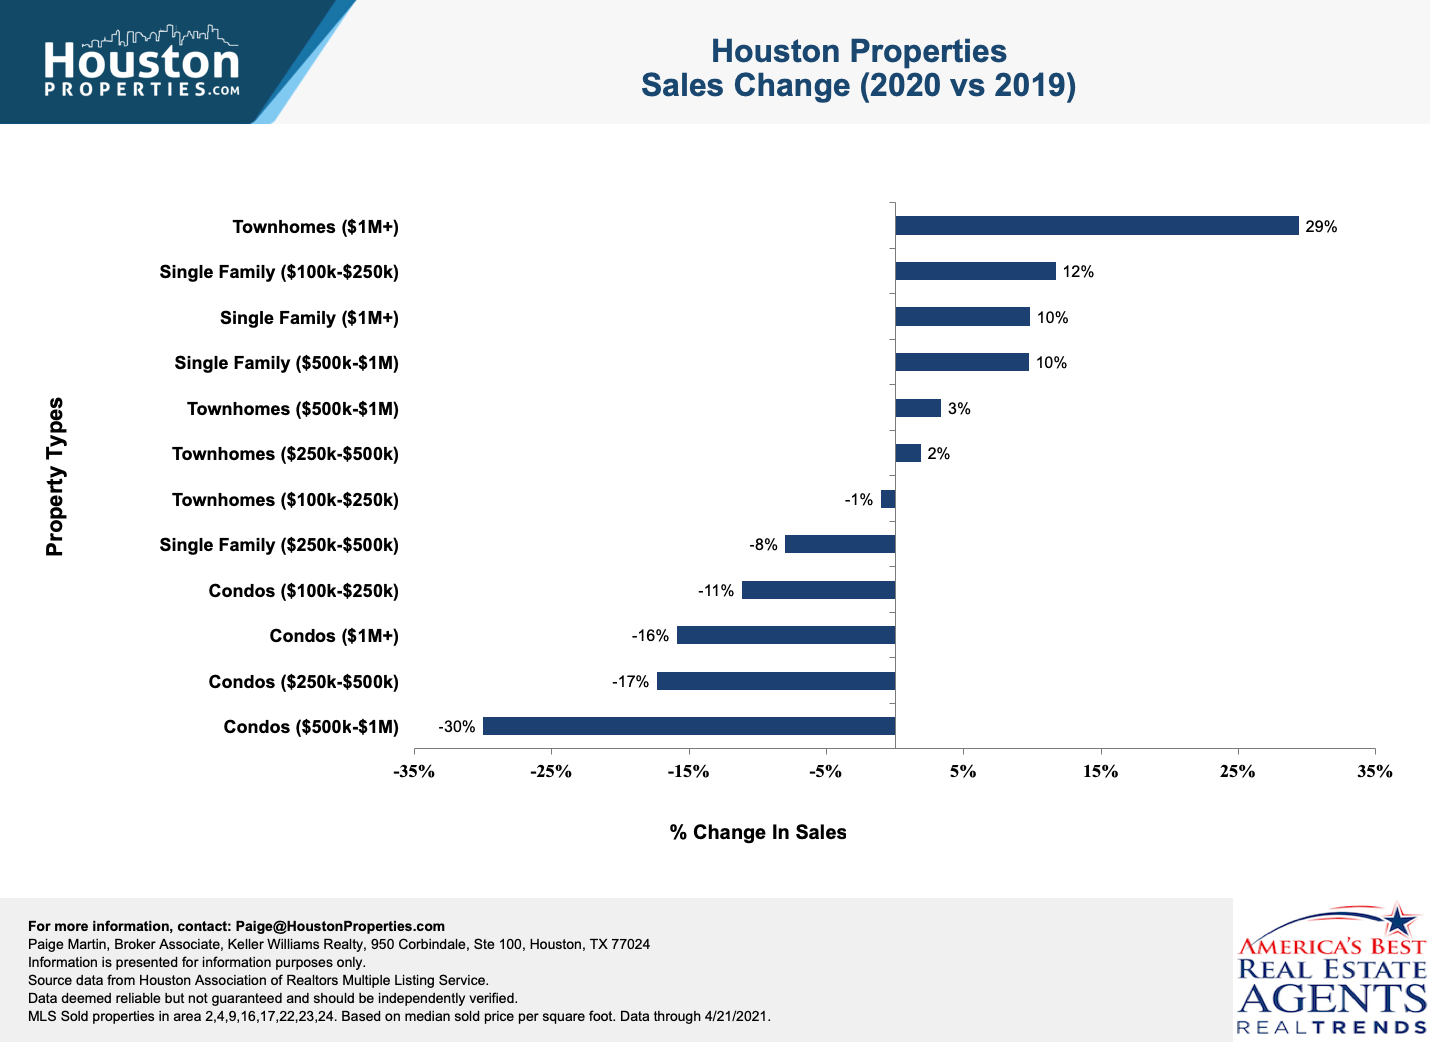 Houston home sales changes